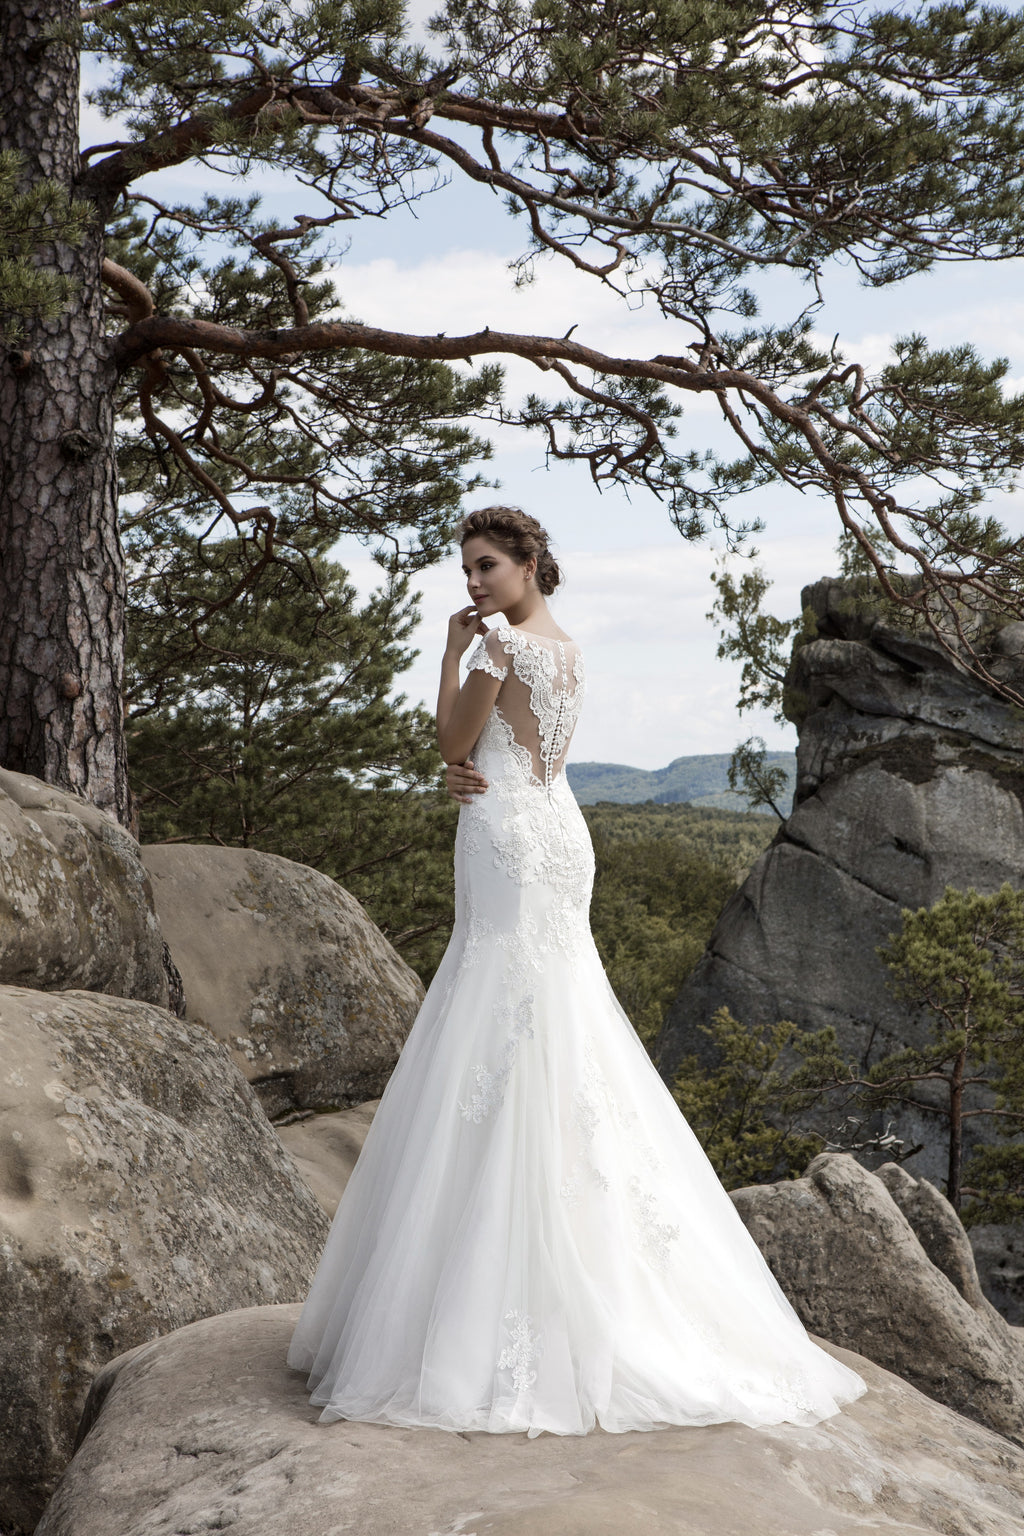 This classy lace mermaid gown features an elegant illusion neckline and an illusion lace back.